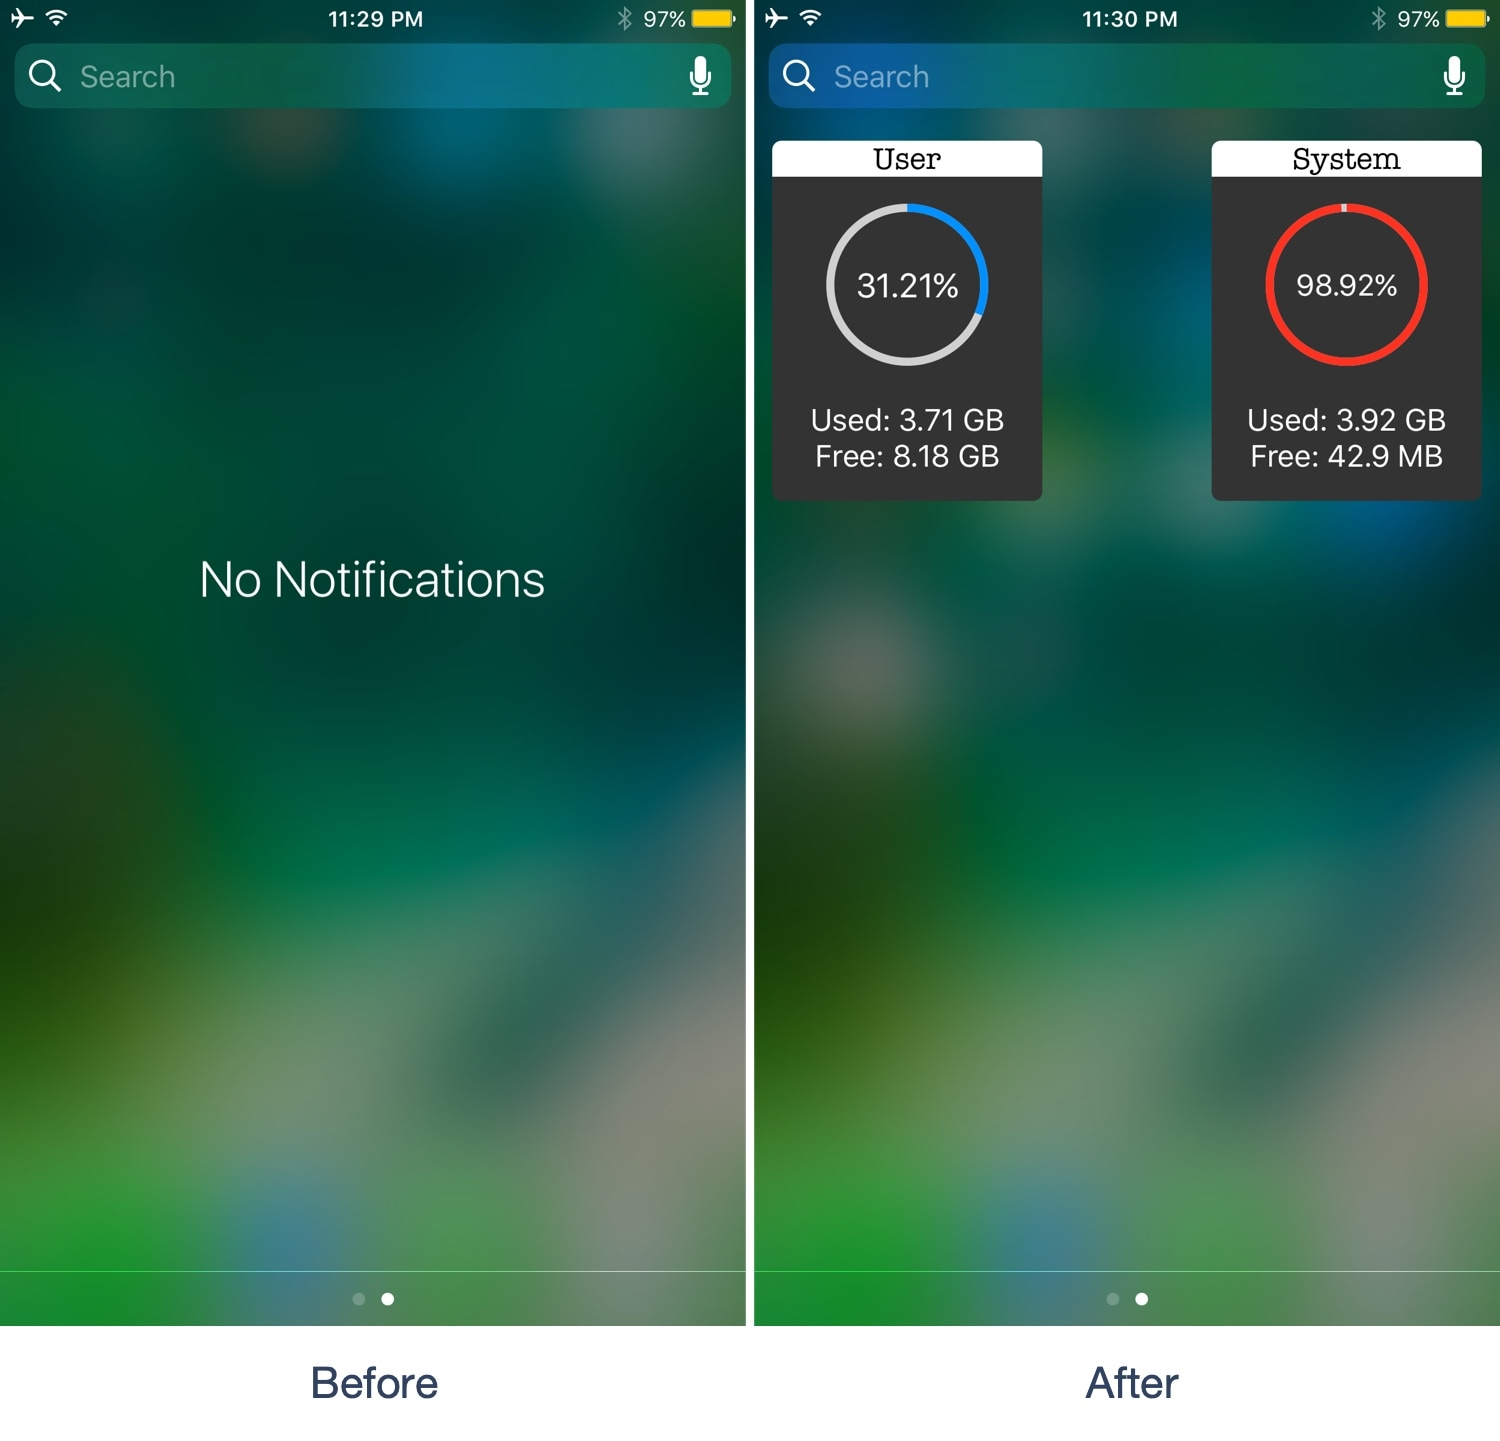 NCFancy replaces the 'No Notifications' text in iOS 10's Notification Center with storage info